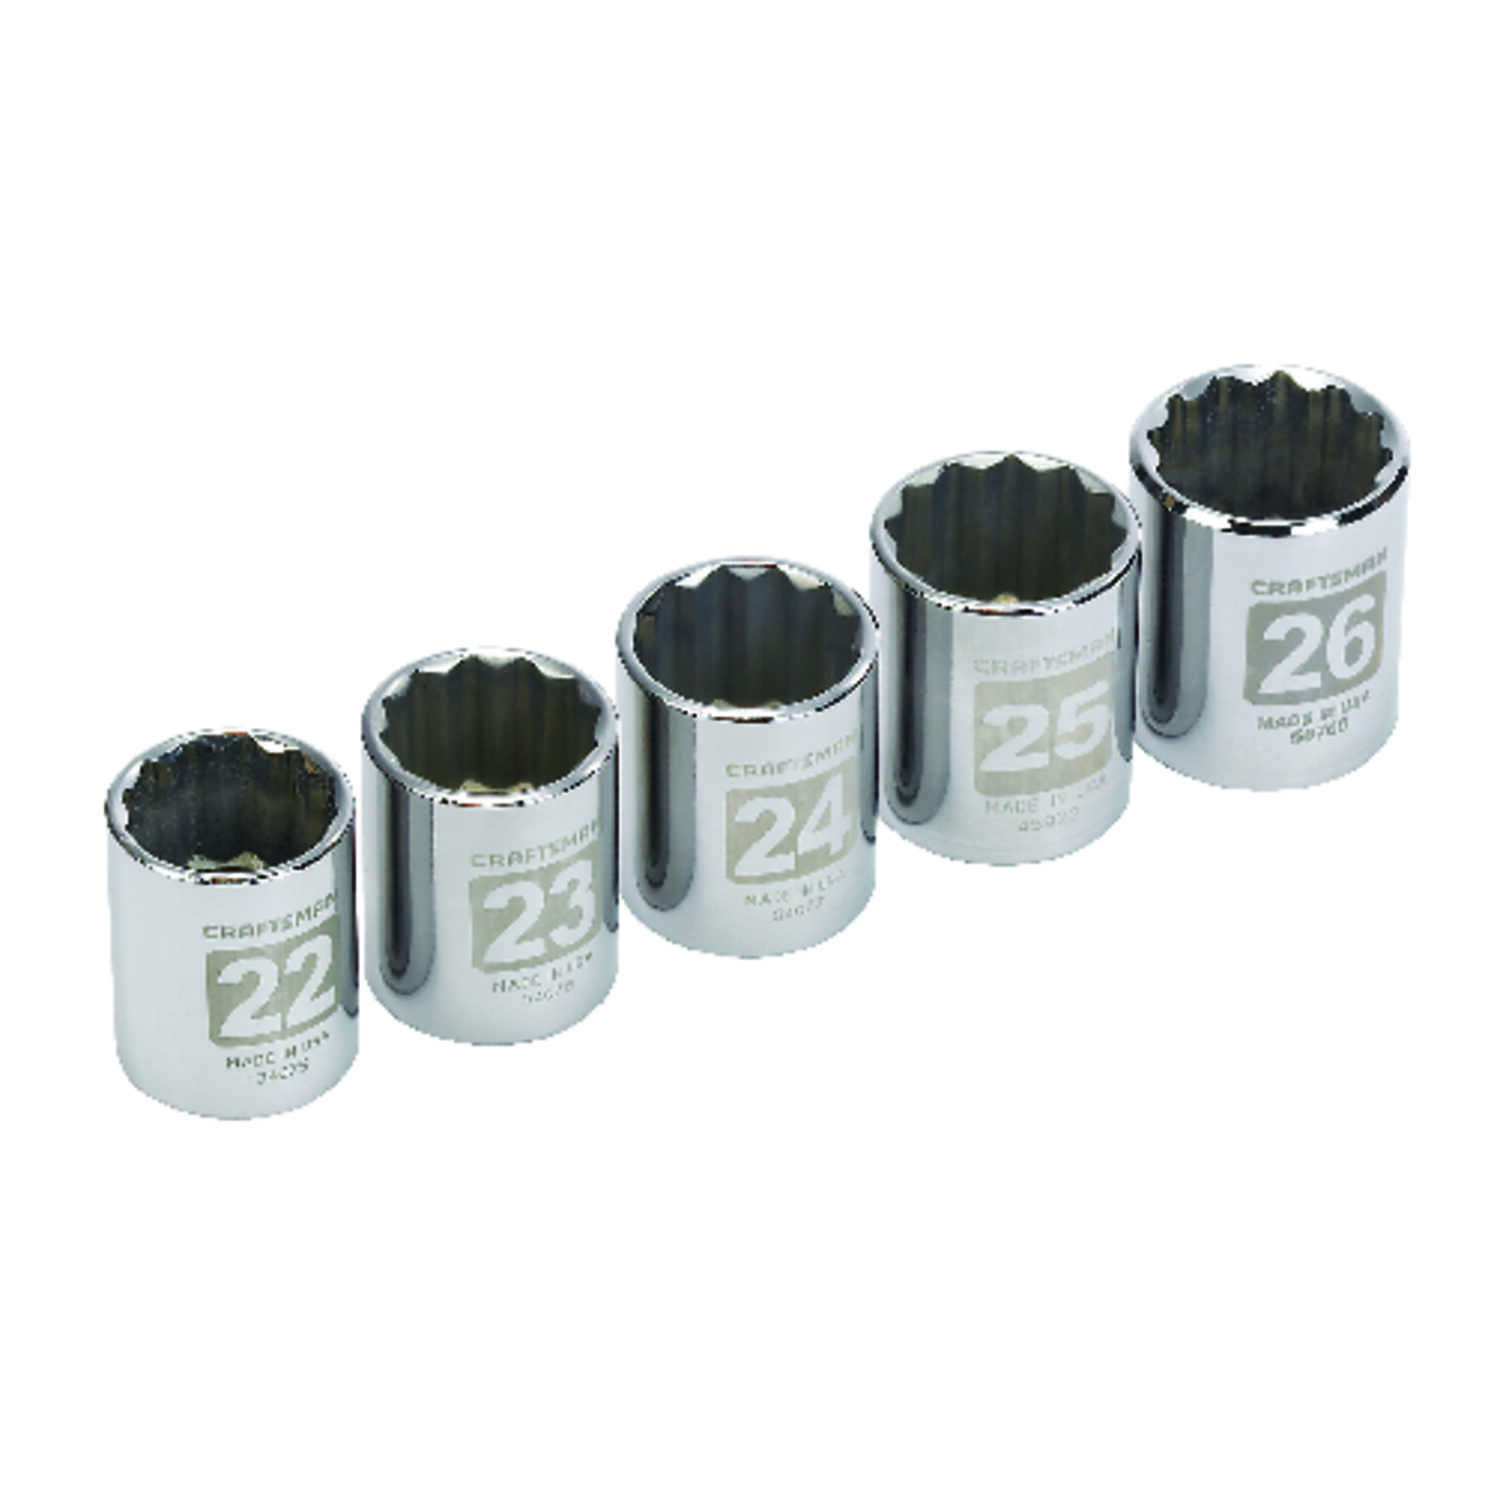 Craftsman  26 mm  x 1/2 in. drive  Metric  12 Point Socket Set  5 pc.